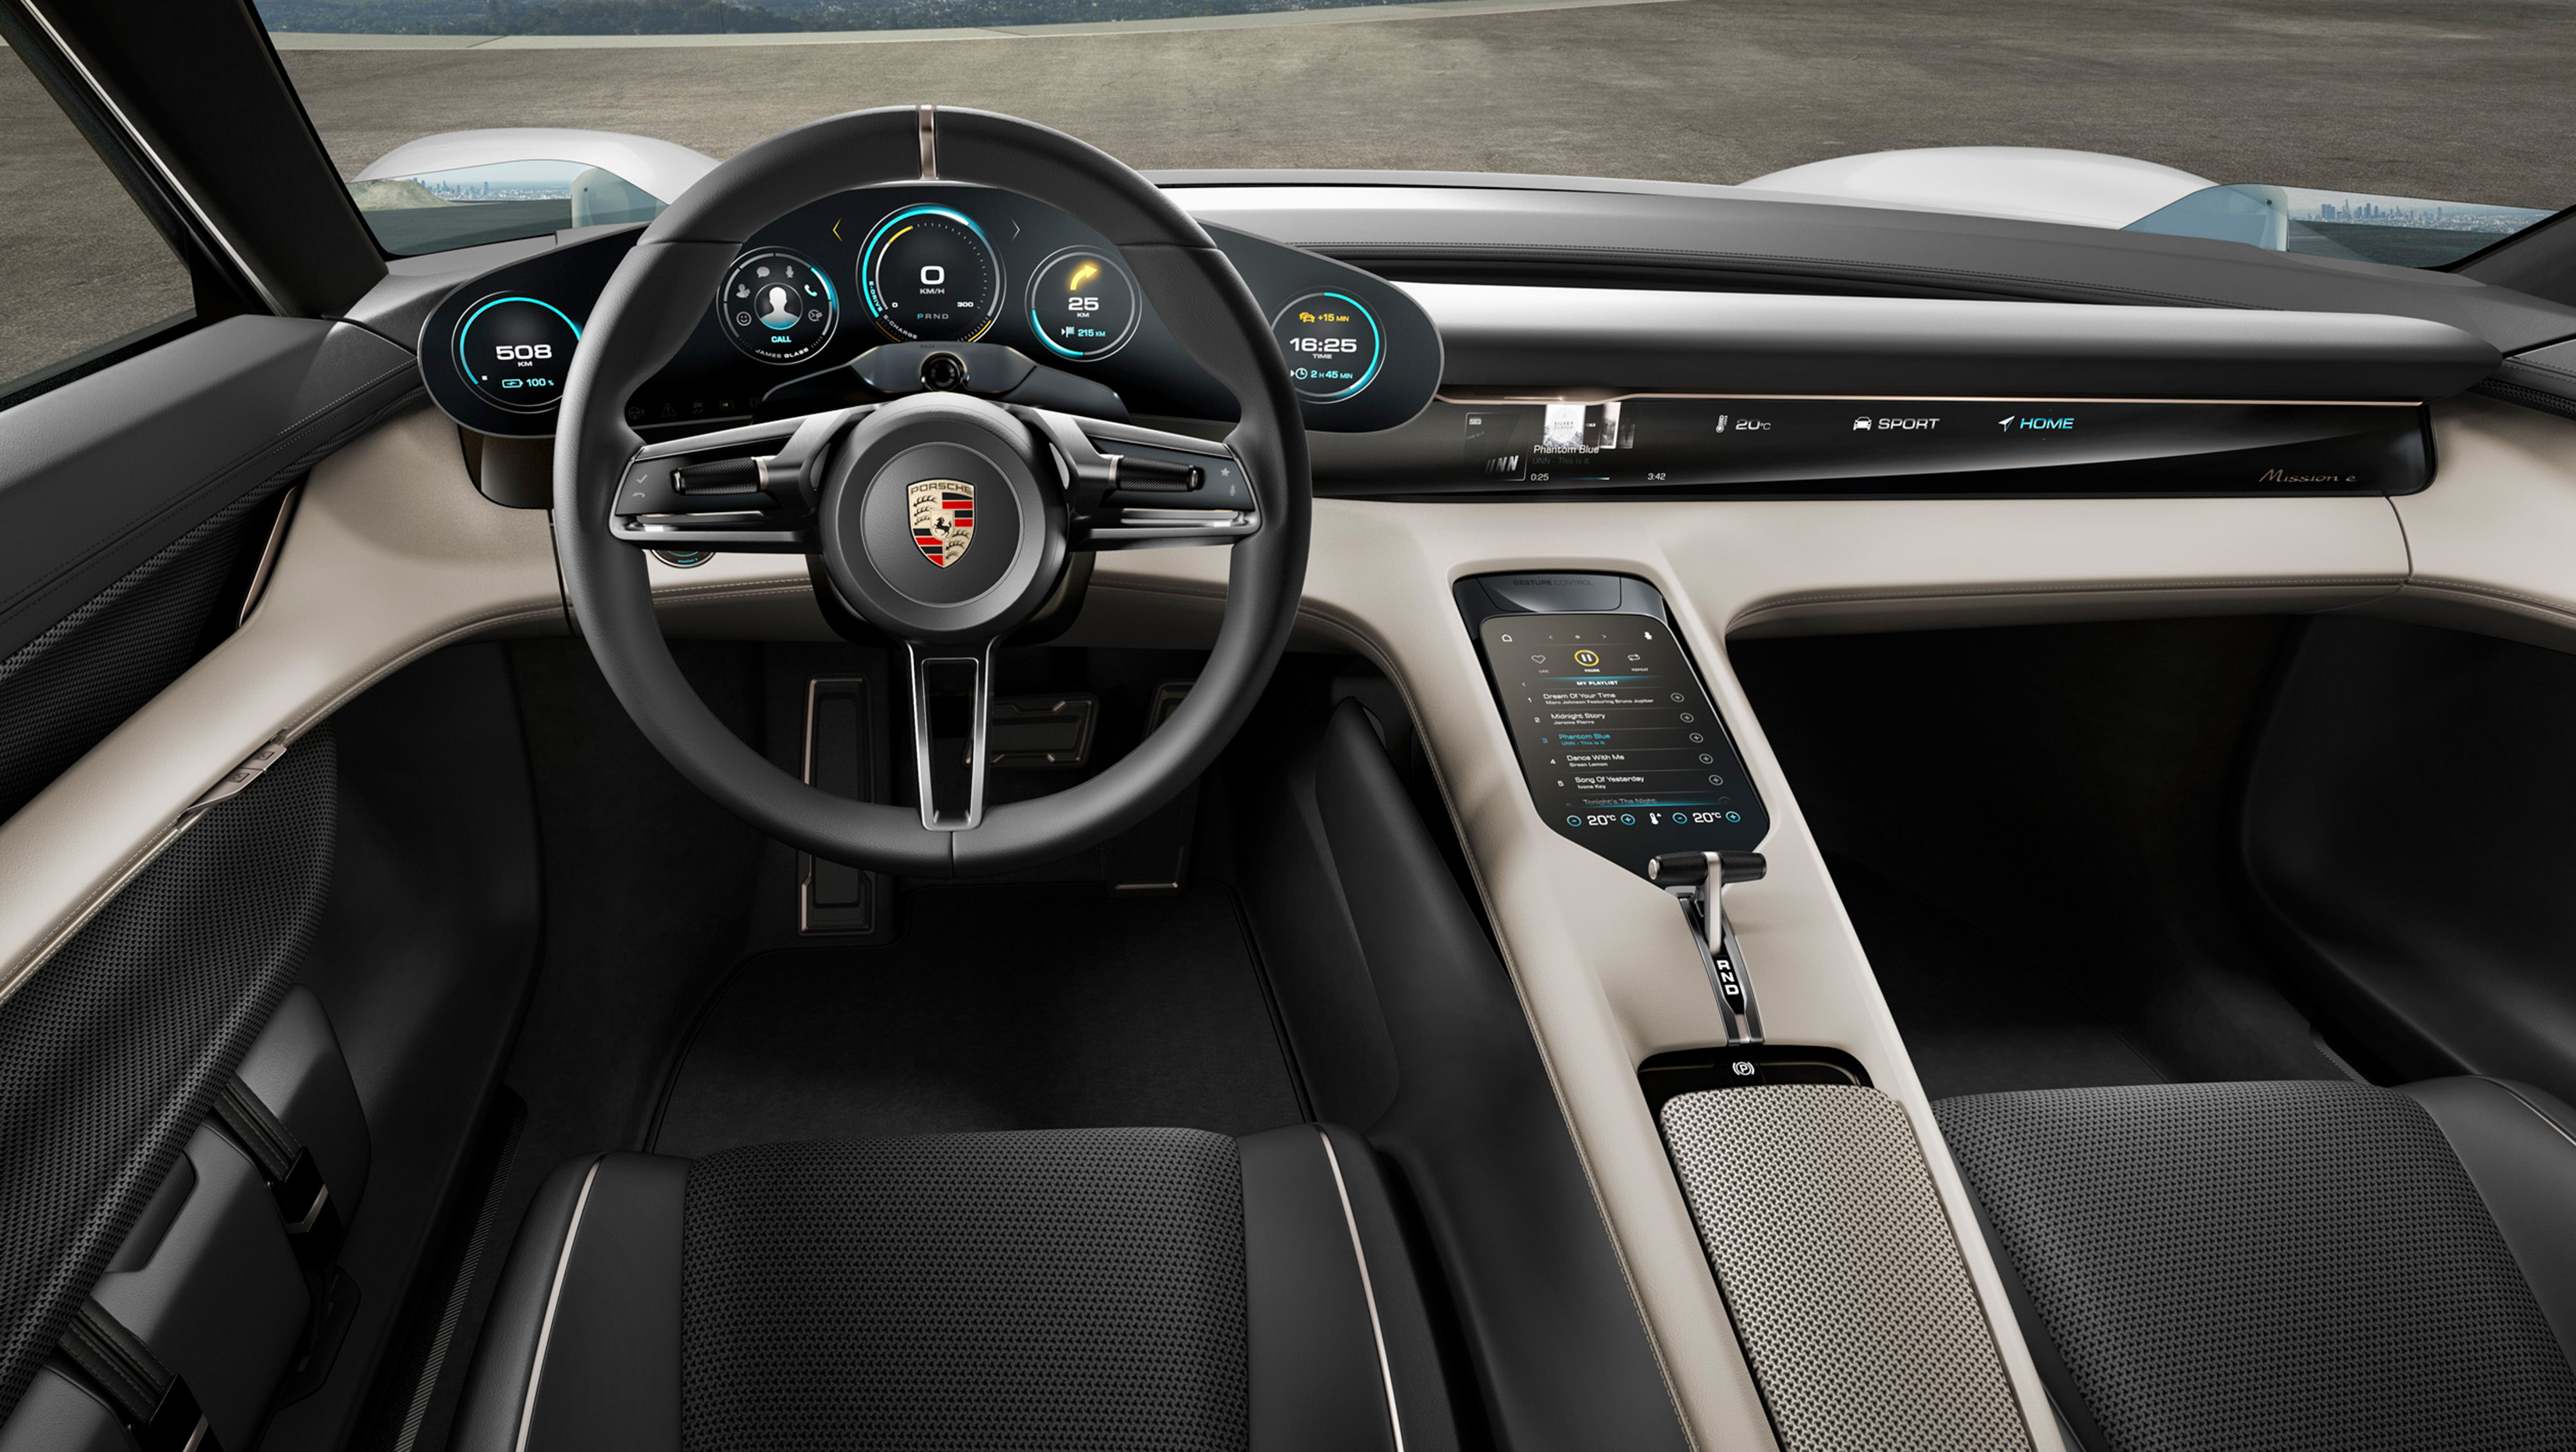 1178823 mission e concept car 2015 porsche ag - What to Expect from CES 2020